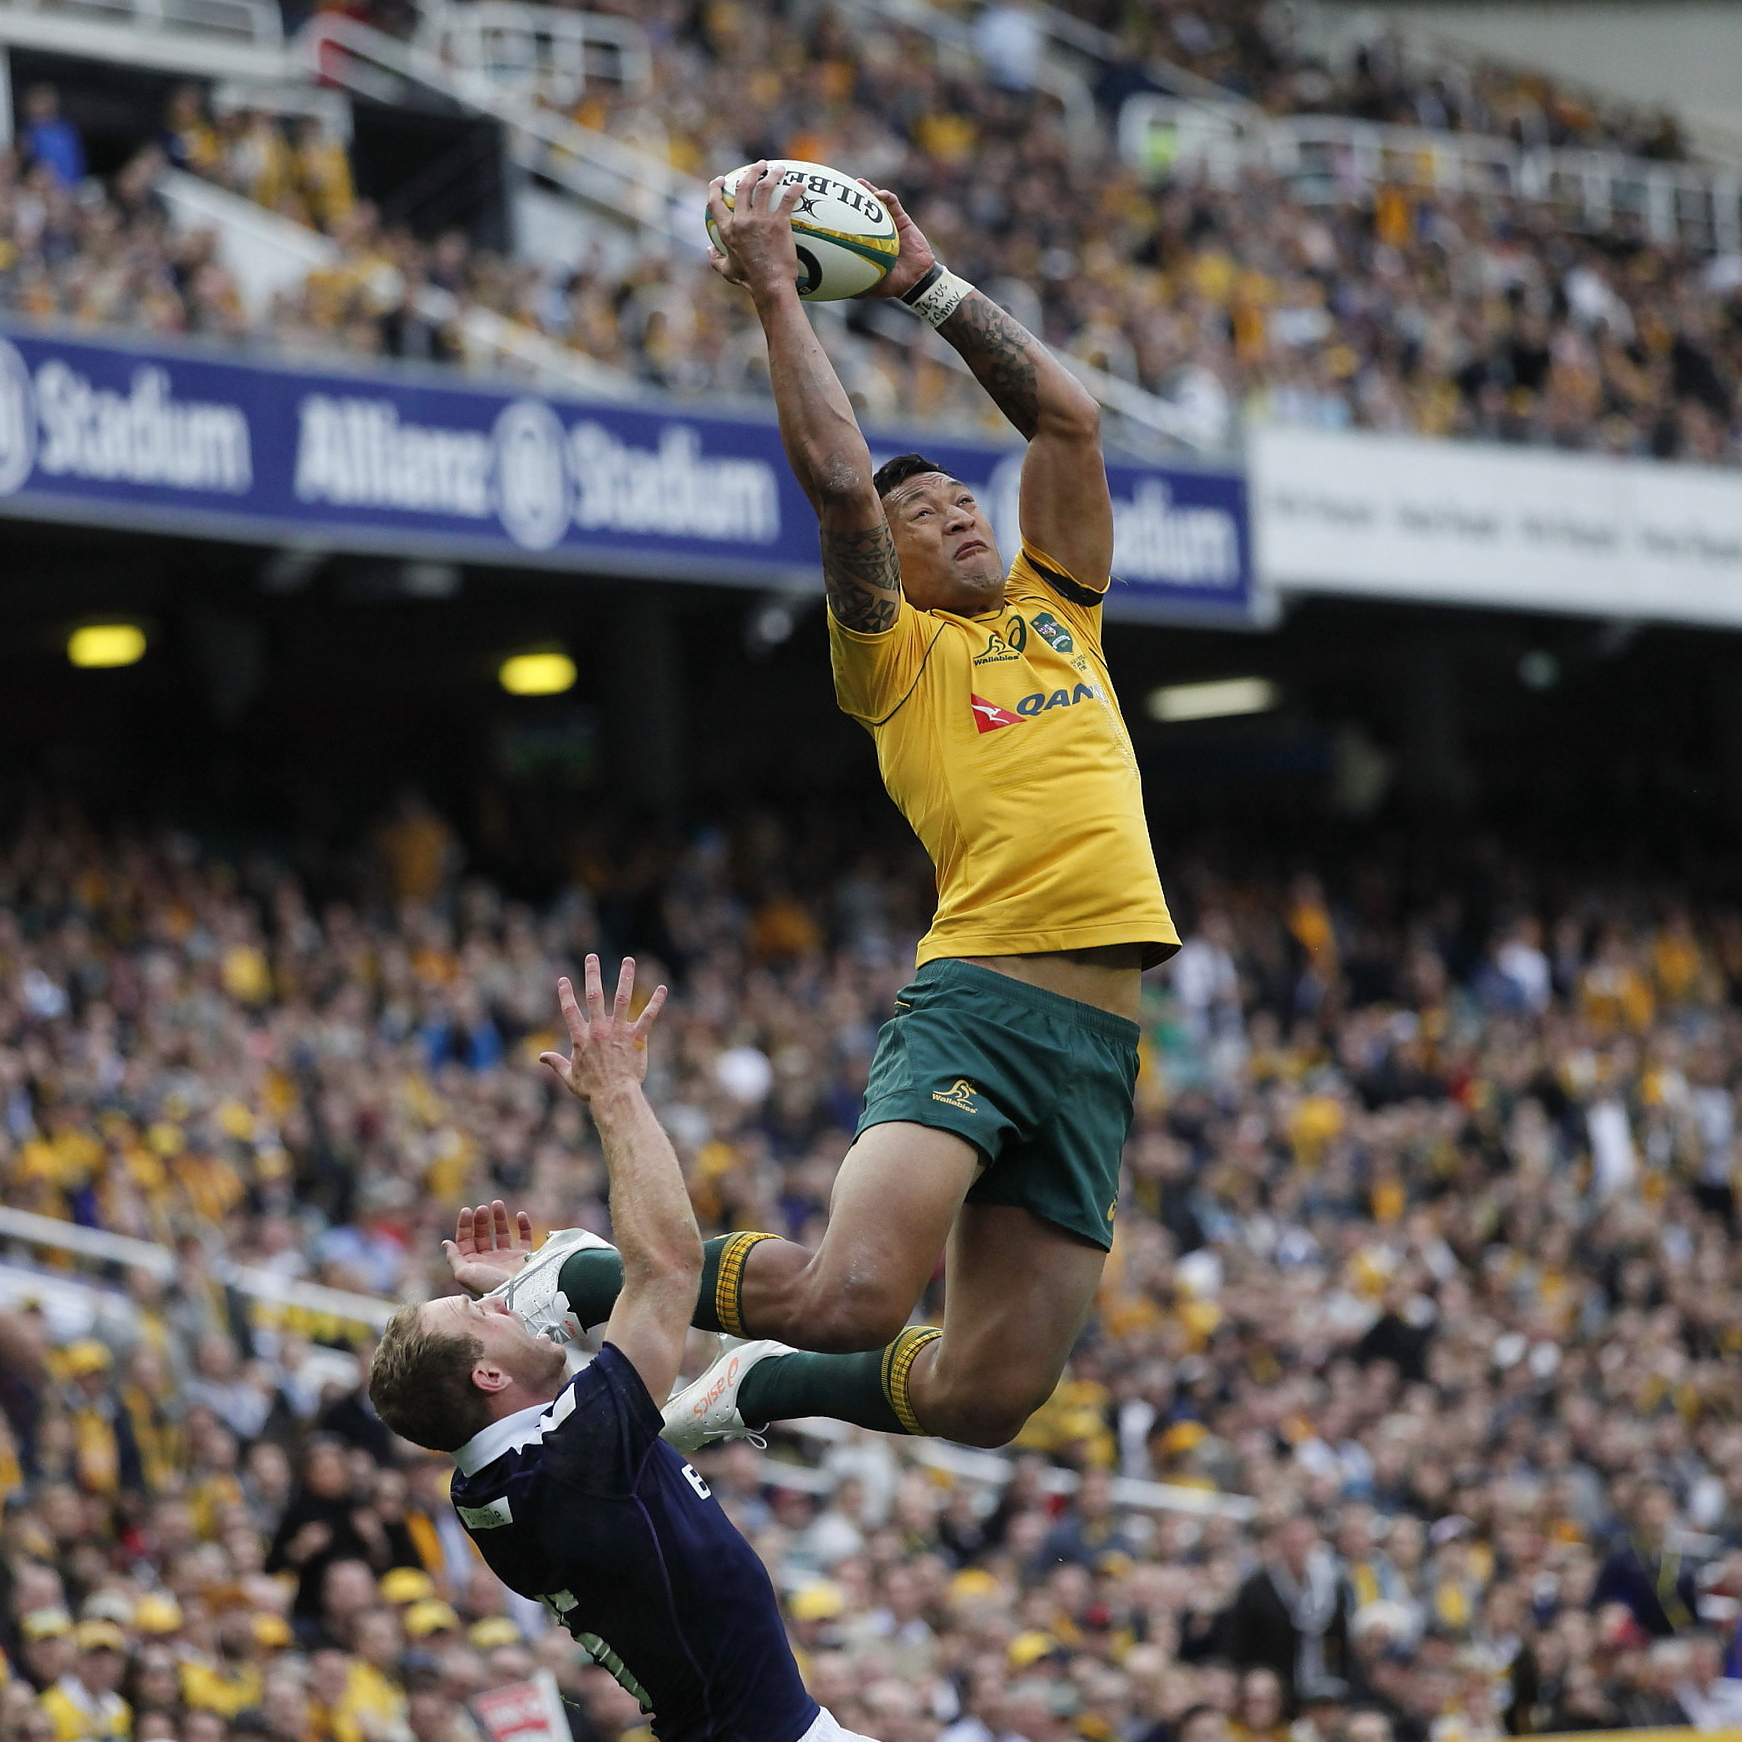 UPDATE 2- Israel Folau removed from Rugby Australia over social media furore